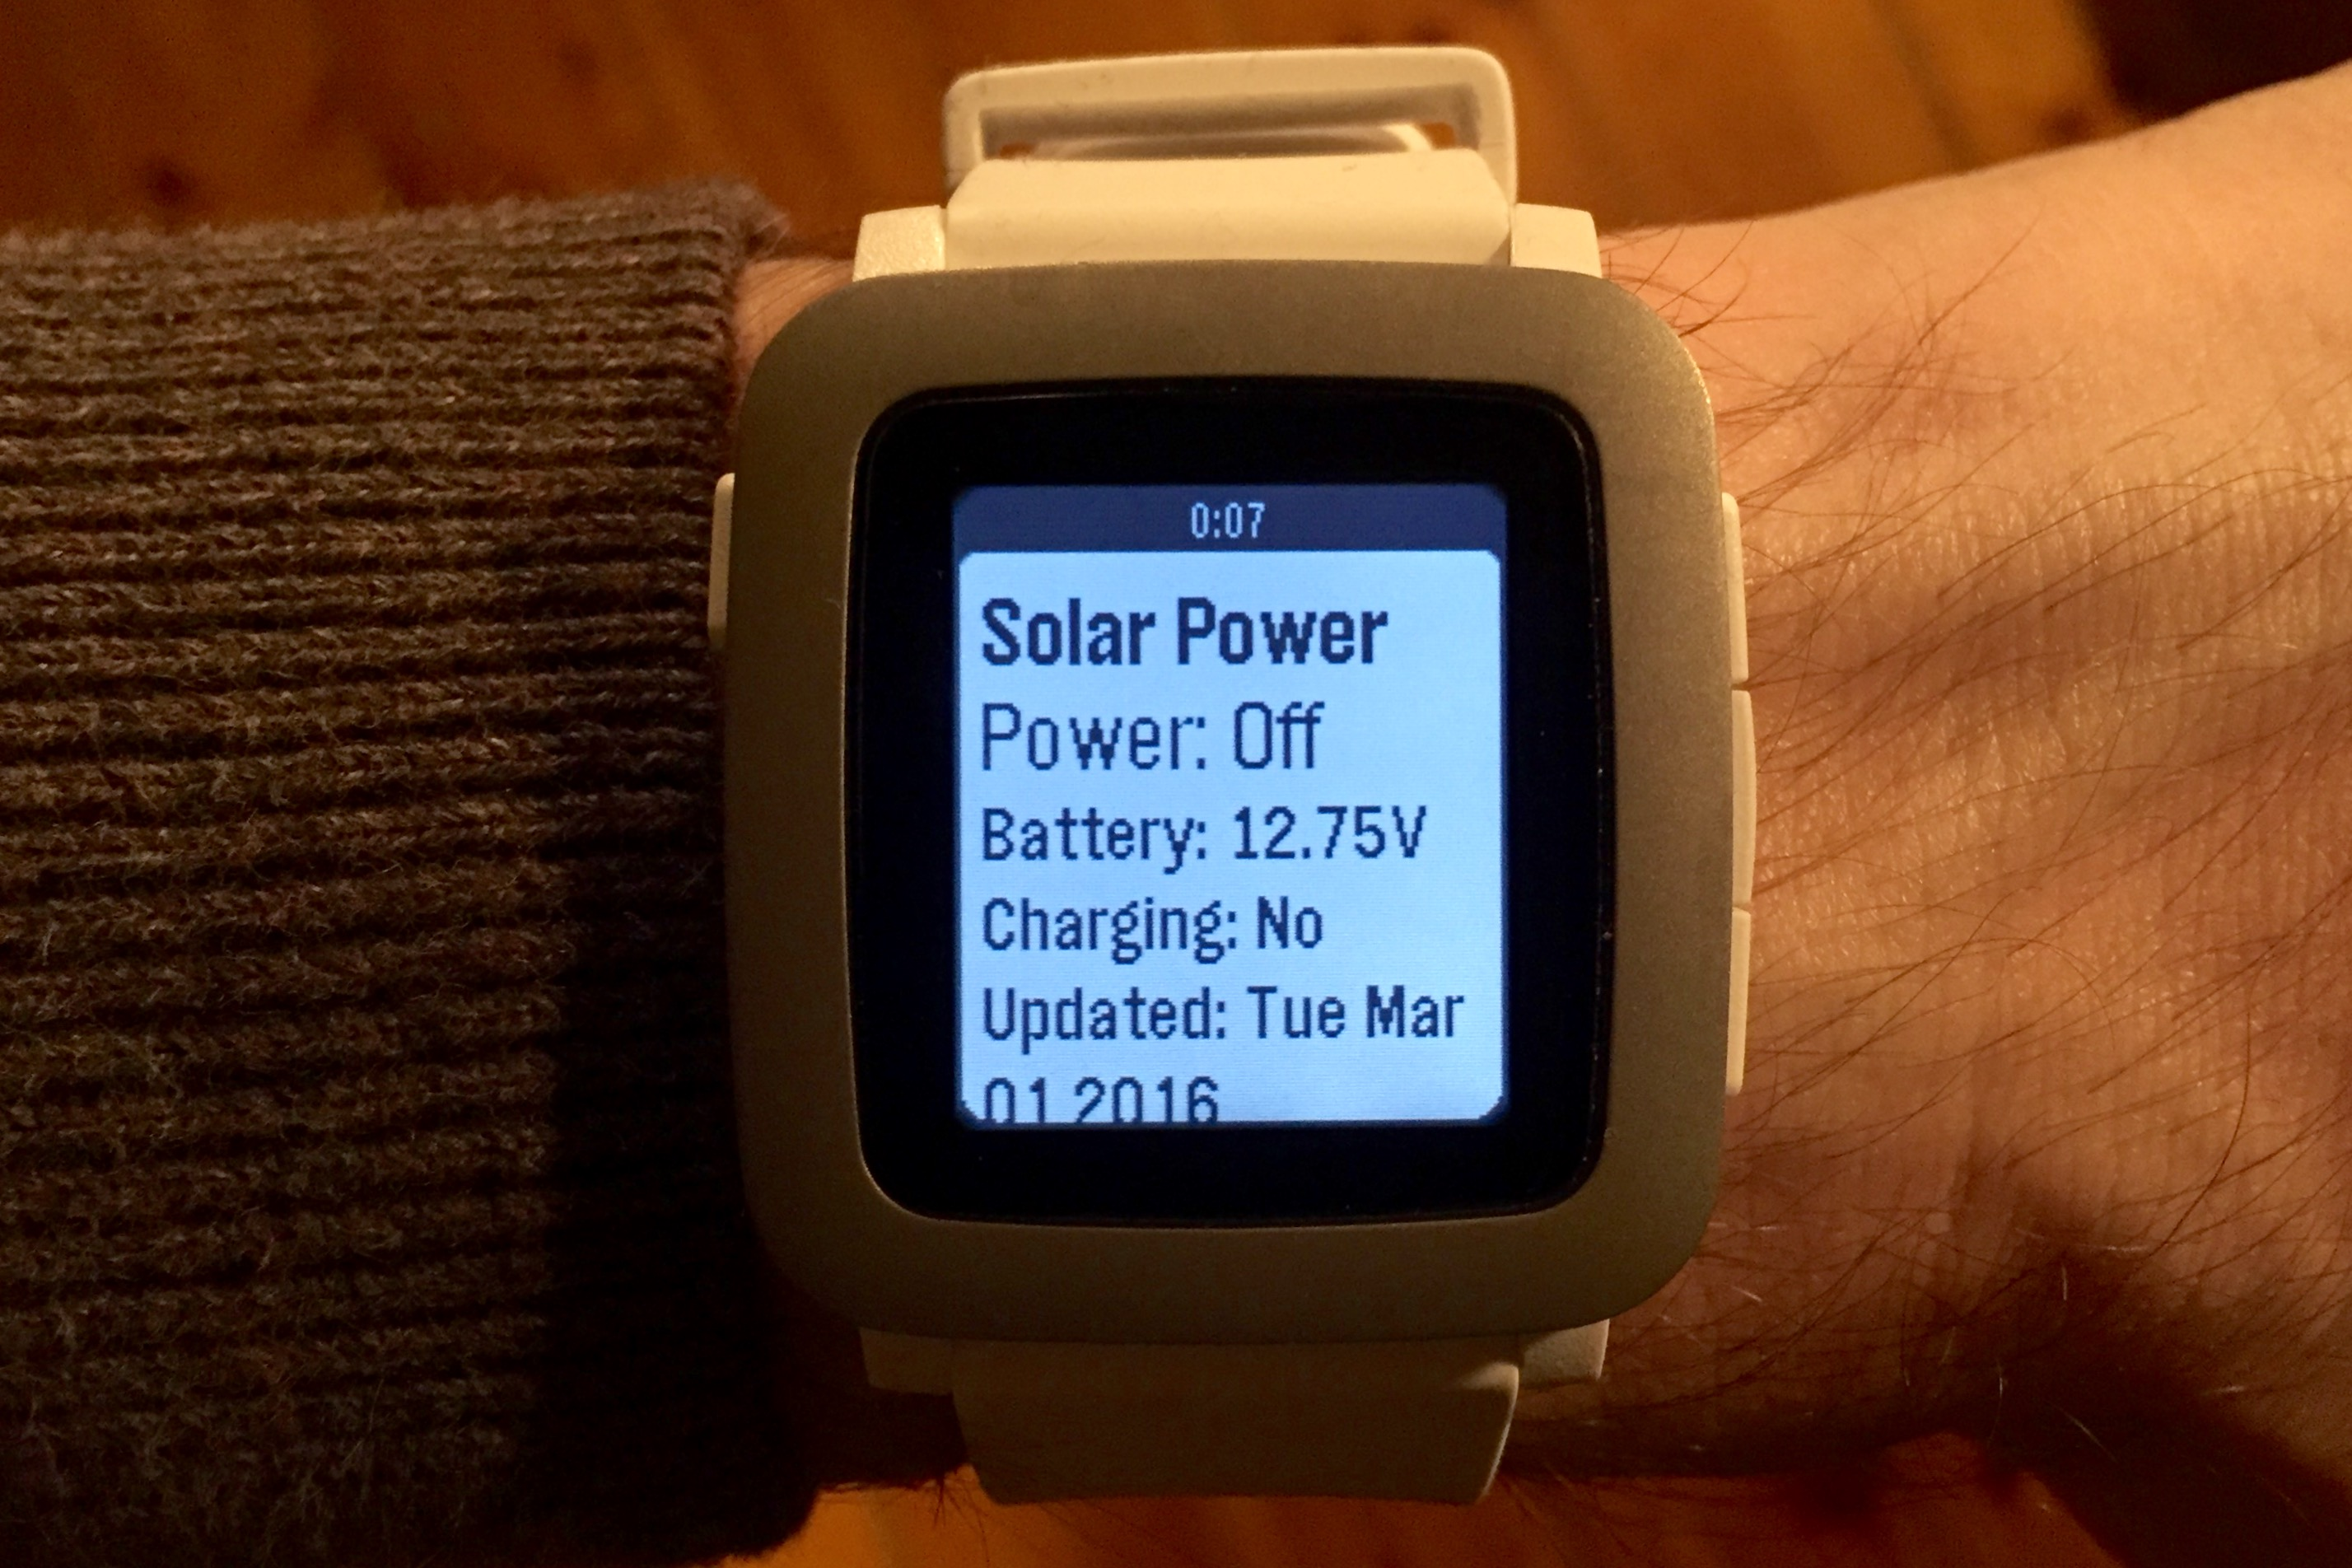 Pebble Time Watch Solar Panel Energy Stats App